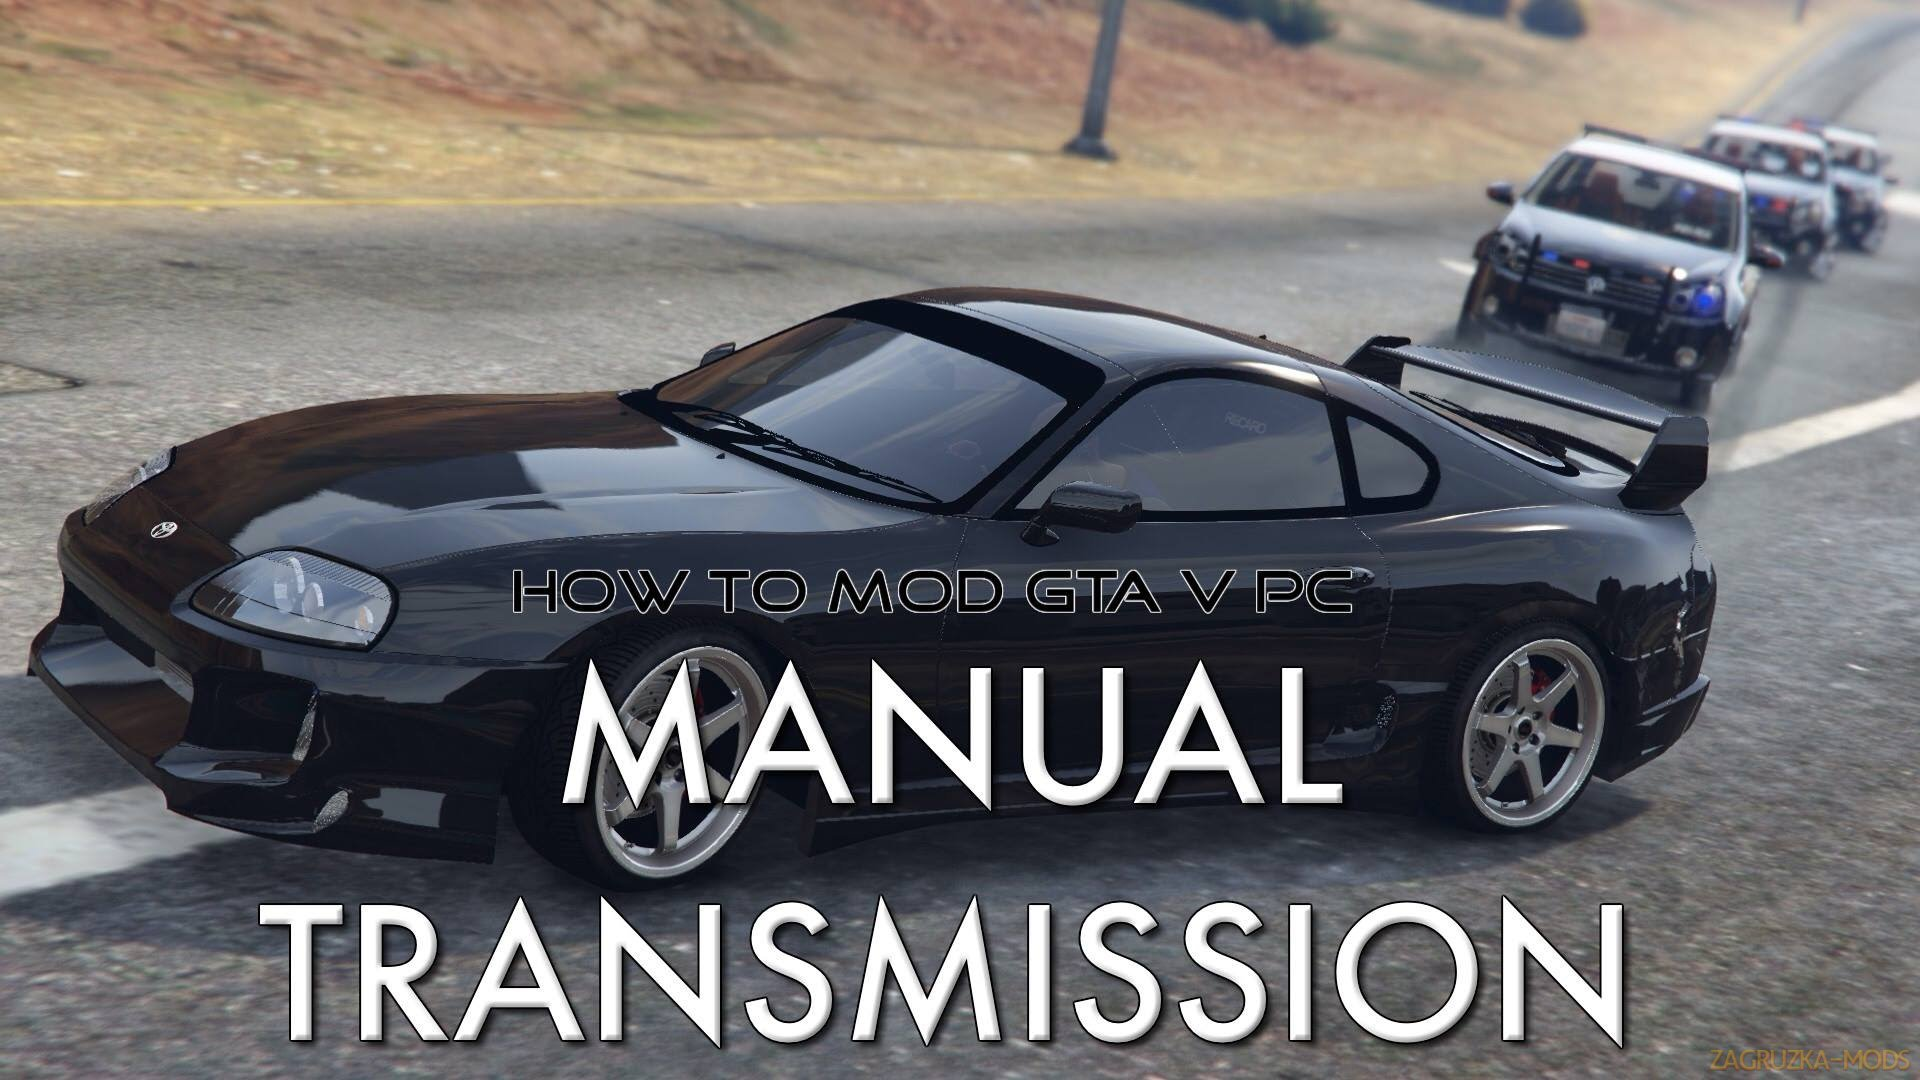 Manual Transmission & Steering Wheel Support v4.6.6 for GTA 5